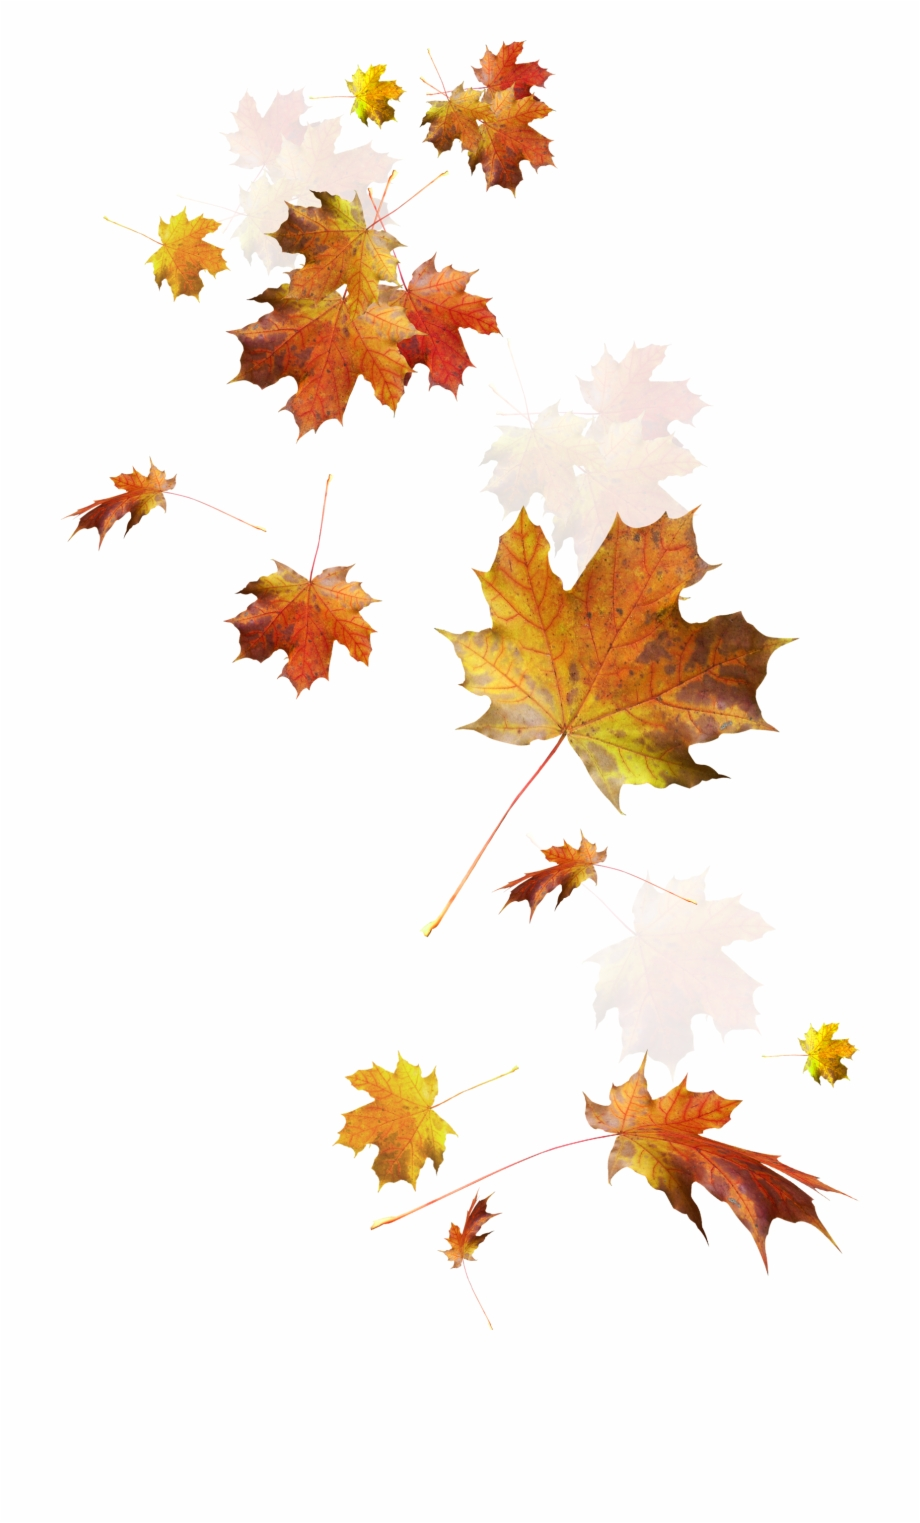 Autumn Color Leaves Leaf Falling Download Hd Png Clipart.